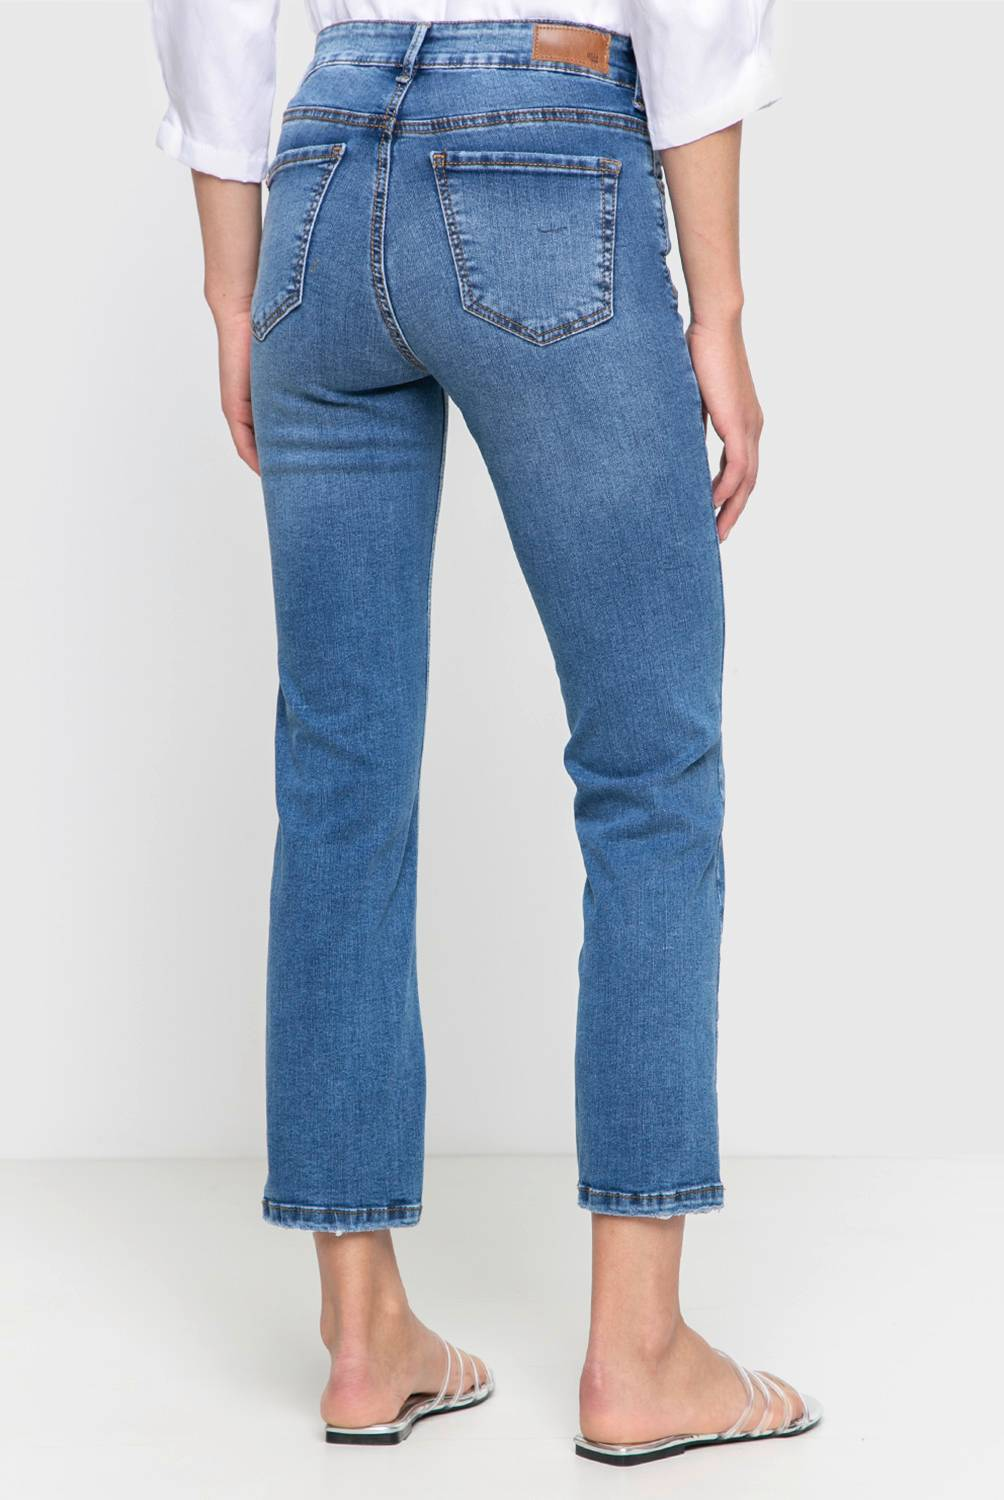 Basement - Jeans Straight Mujer